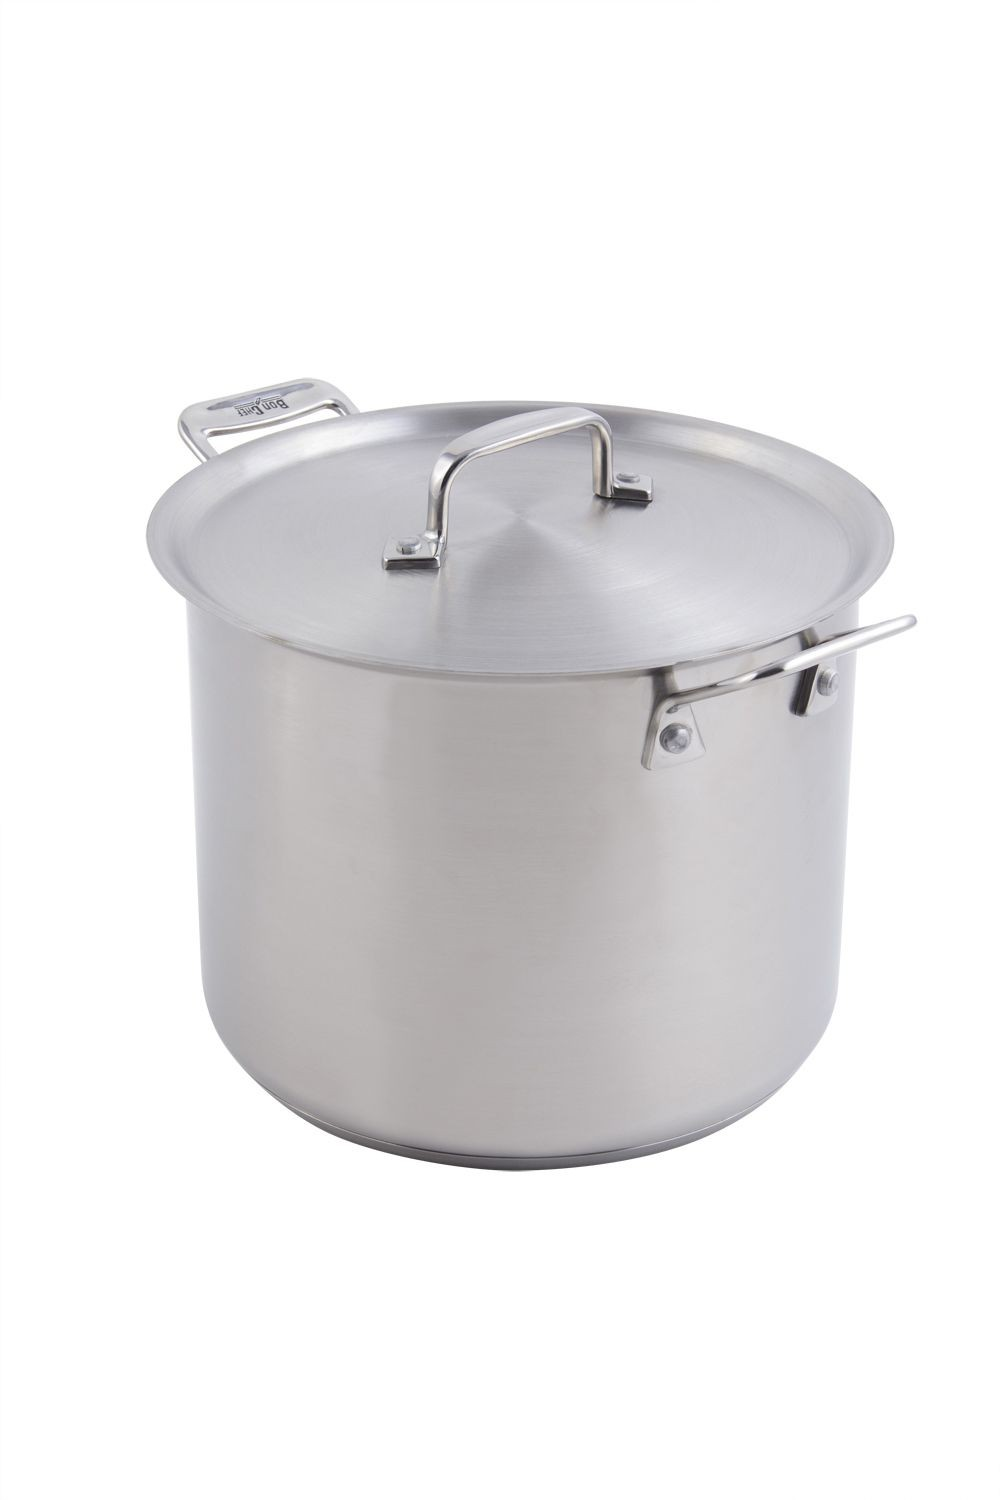 Bon Chef 60003 Cucina Stainless Steel Stock Pot with Lid, 7 Qt.